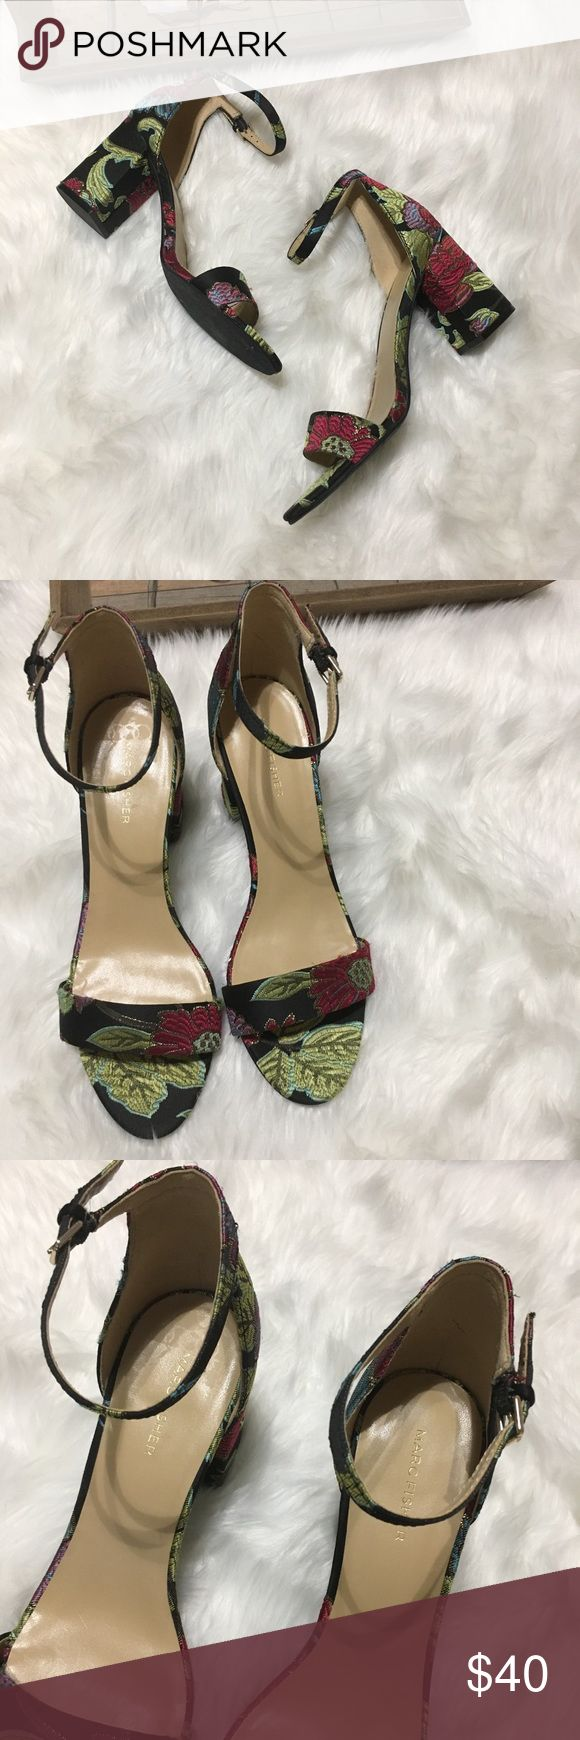 Marc Fisher Embroidered Floral Print Heels Sz 10M Gorgeous Marc Fisher Floral Print Embroidered strapy square heels size 10M in excellent brand new never worn condition. Marc Fisher Shoes Heels